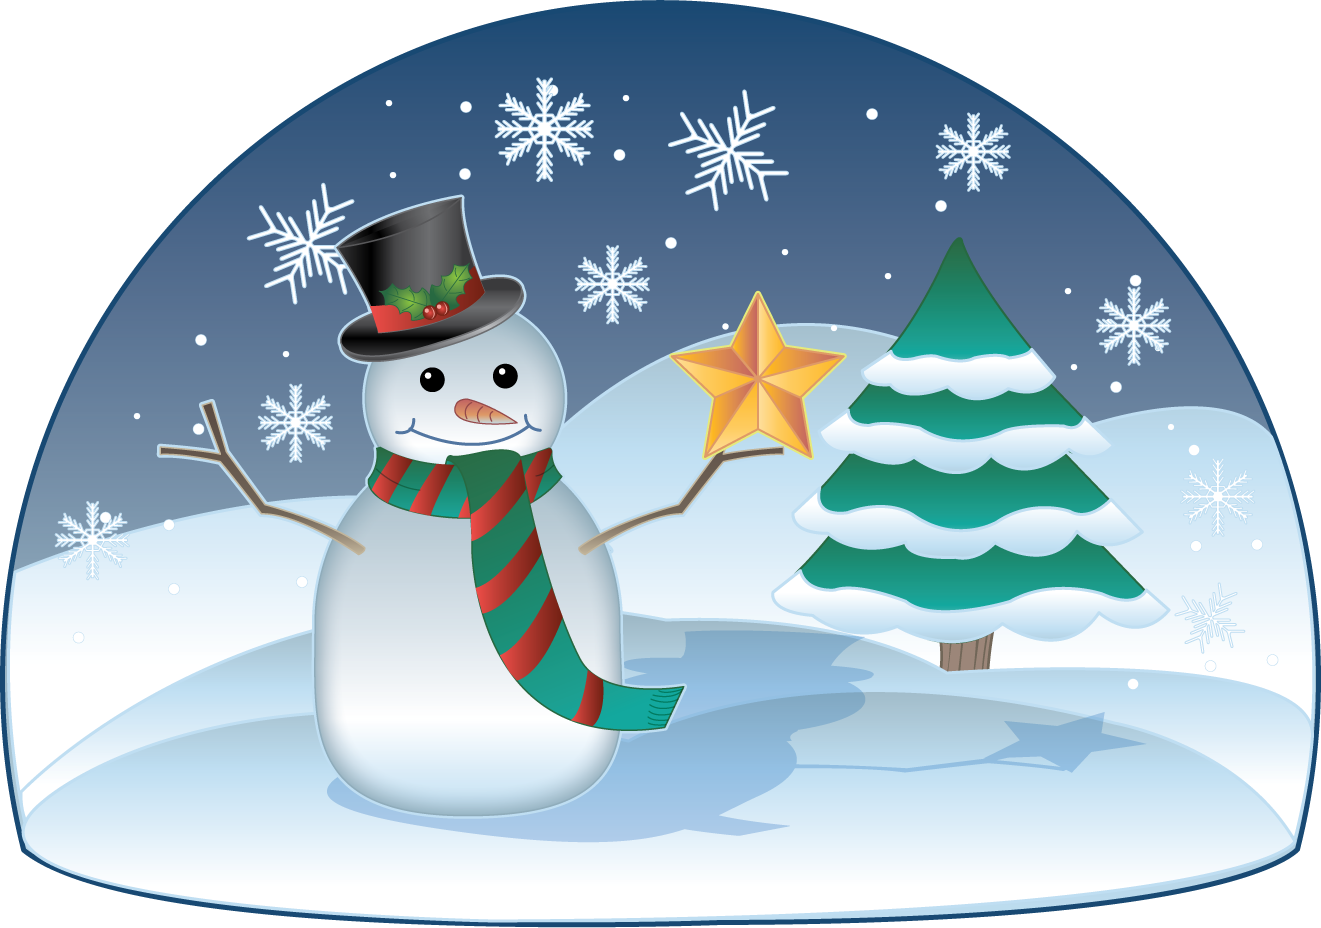 Christmas snowmen clipart graphic black and white stock January meal of the month clipart color free - ClipartFox graphic black and white stock